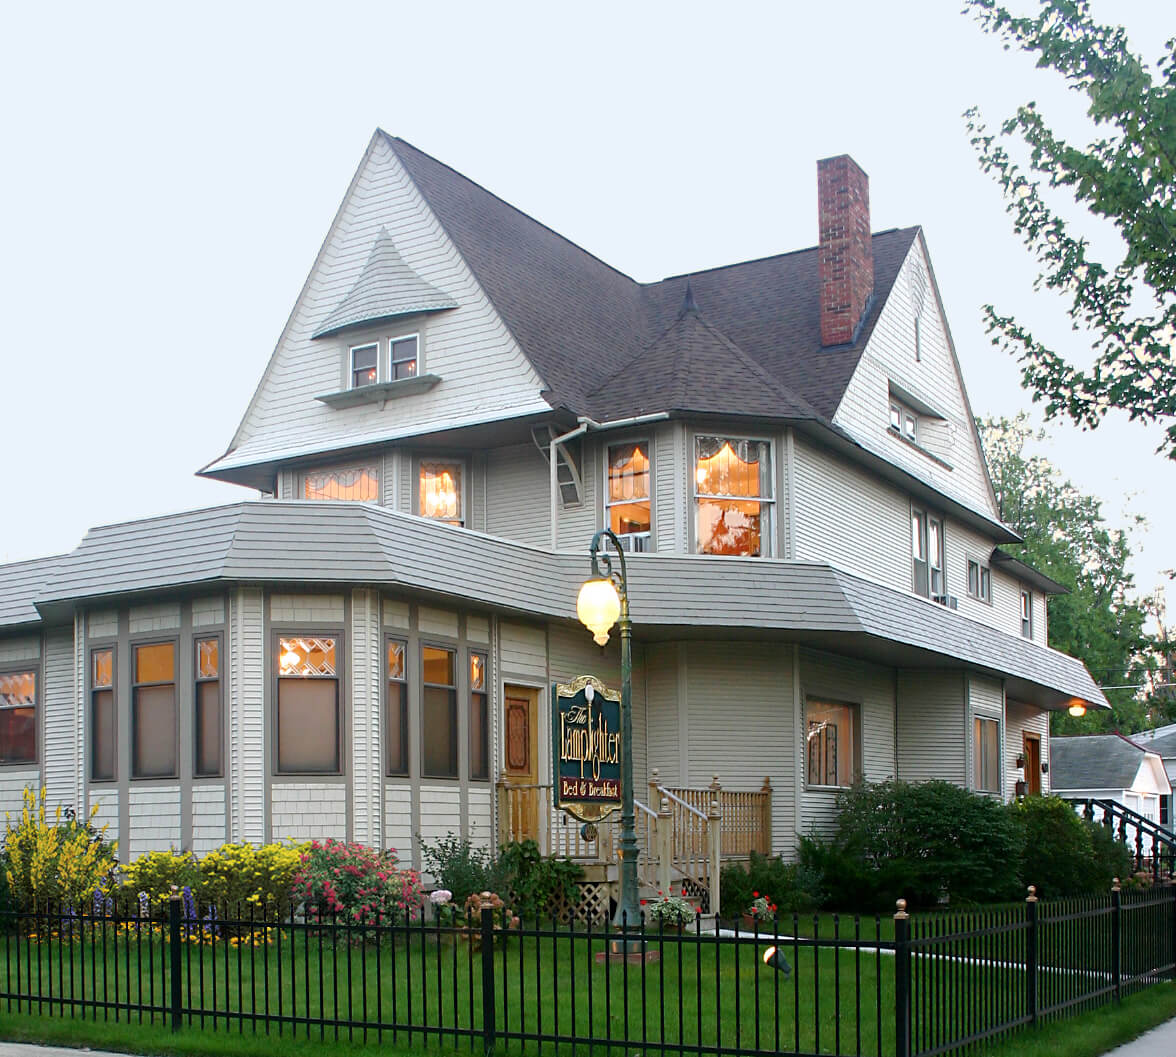 Beautiful 1890s Historical Bu0026B With Old World Charm Located Near Miles Of  Lake Michigan Beach. Come Play, Explore And See All The Area Has To Offer.